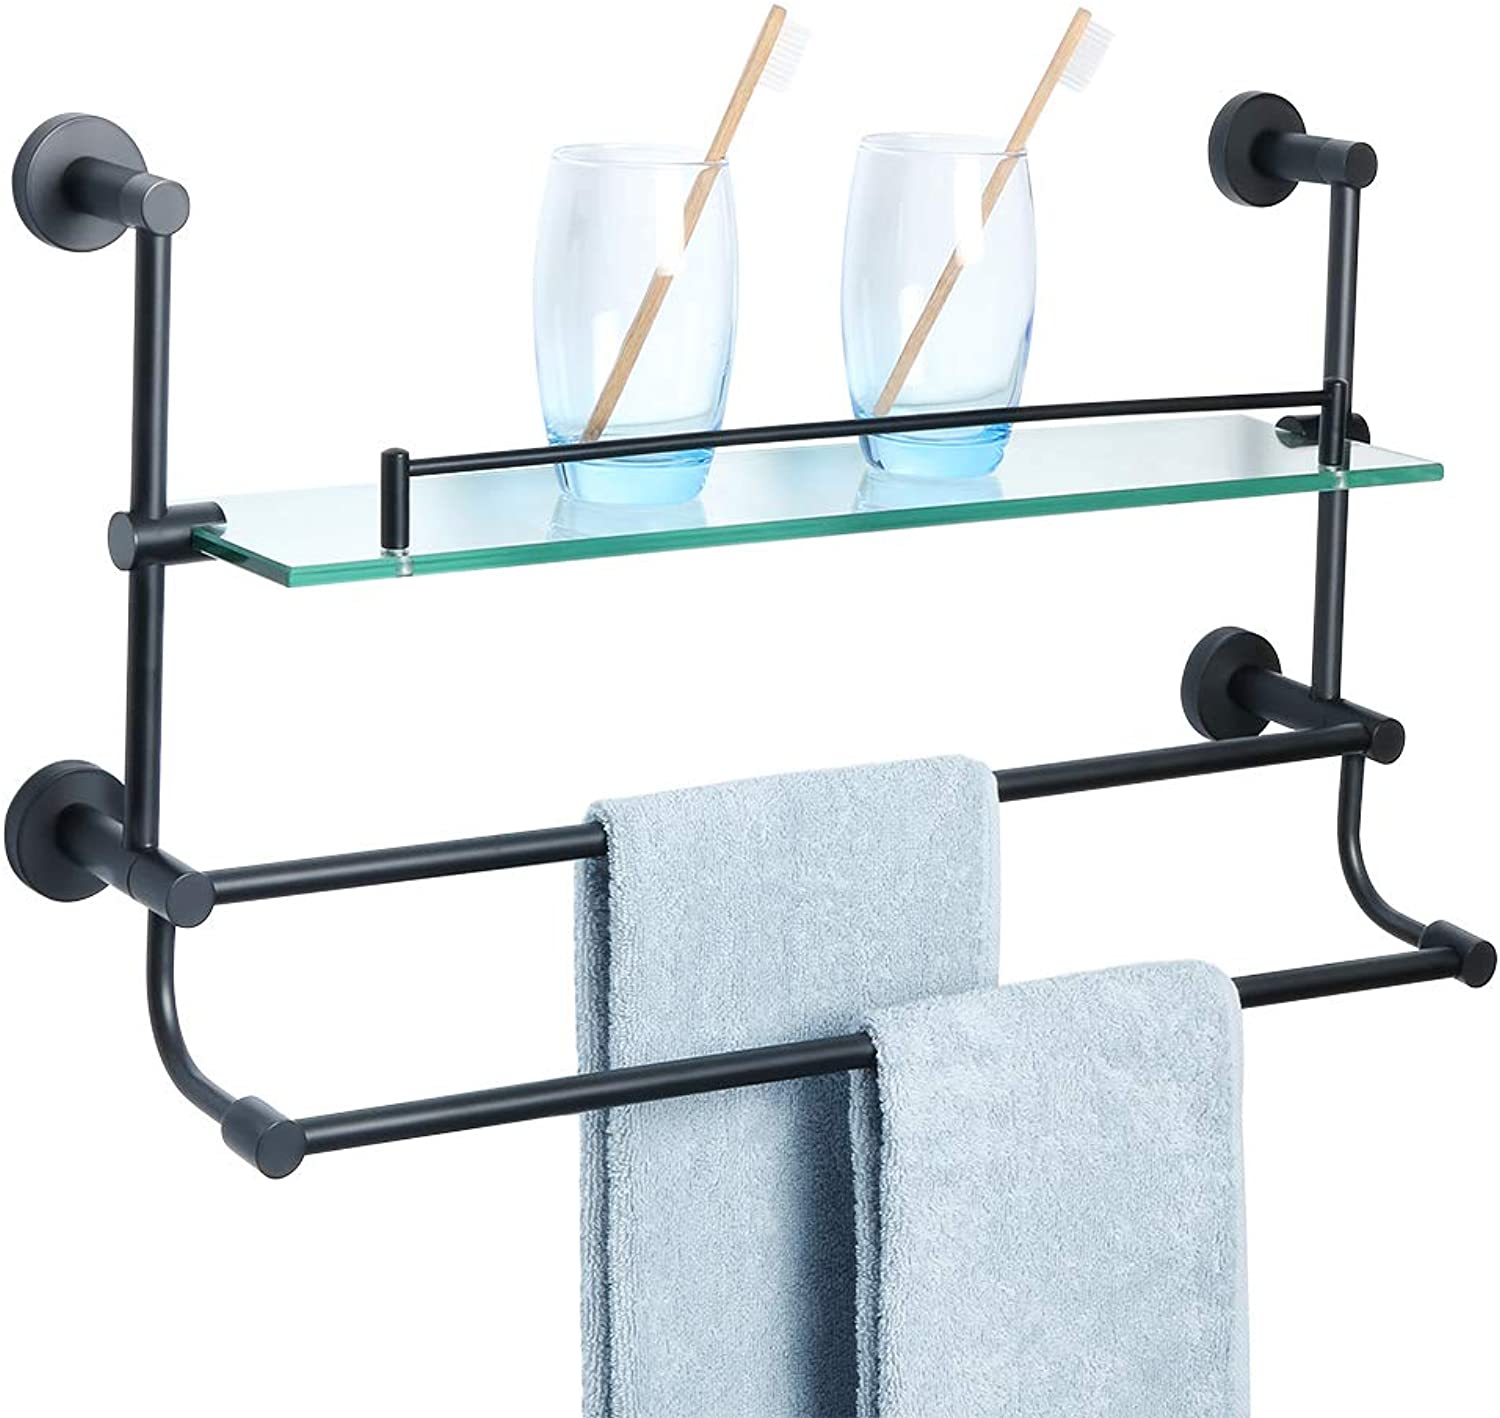 Alise Bathroom Shelf SUS 304 Stainless Steel Shower Glass Shelf with Double Towel Bar Rail Towel Rack Wall Mount,Matte Black GY9800-B